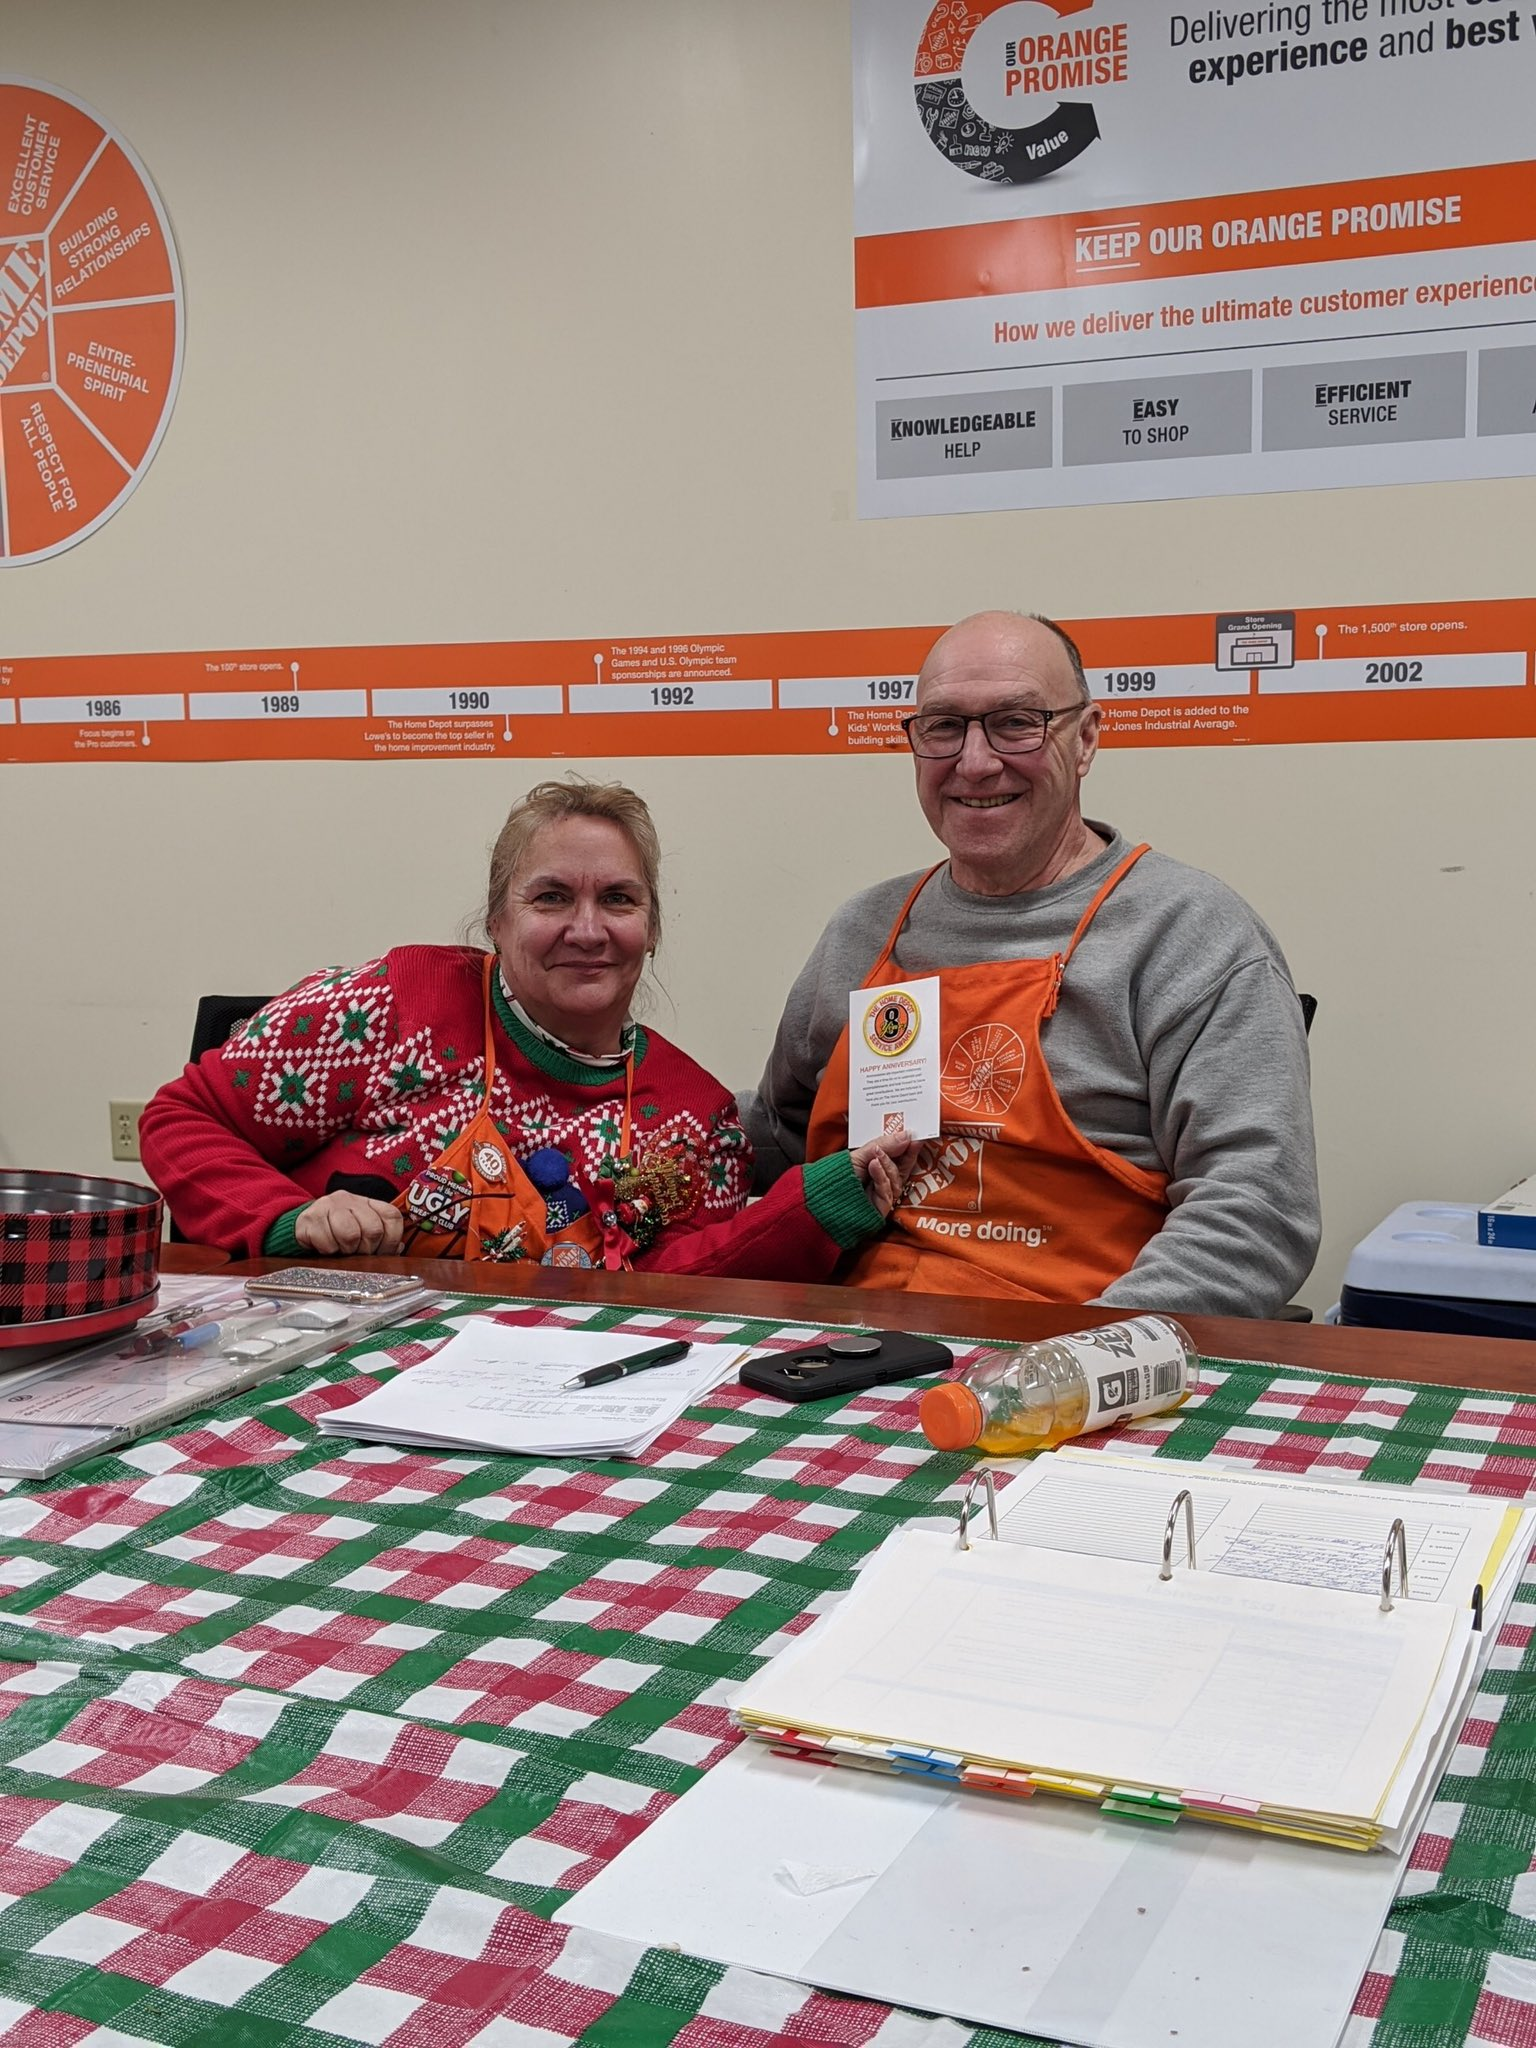 Home Depot 3486 On Twitter Great Things Happening At 3486 Dh D78 Mickey Hit His 8 Th Year With Hd Dh D26 Rhonda Is Officially Certified In Her Dept And Dh D90 Tracy